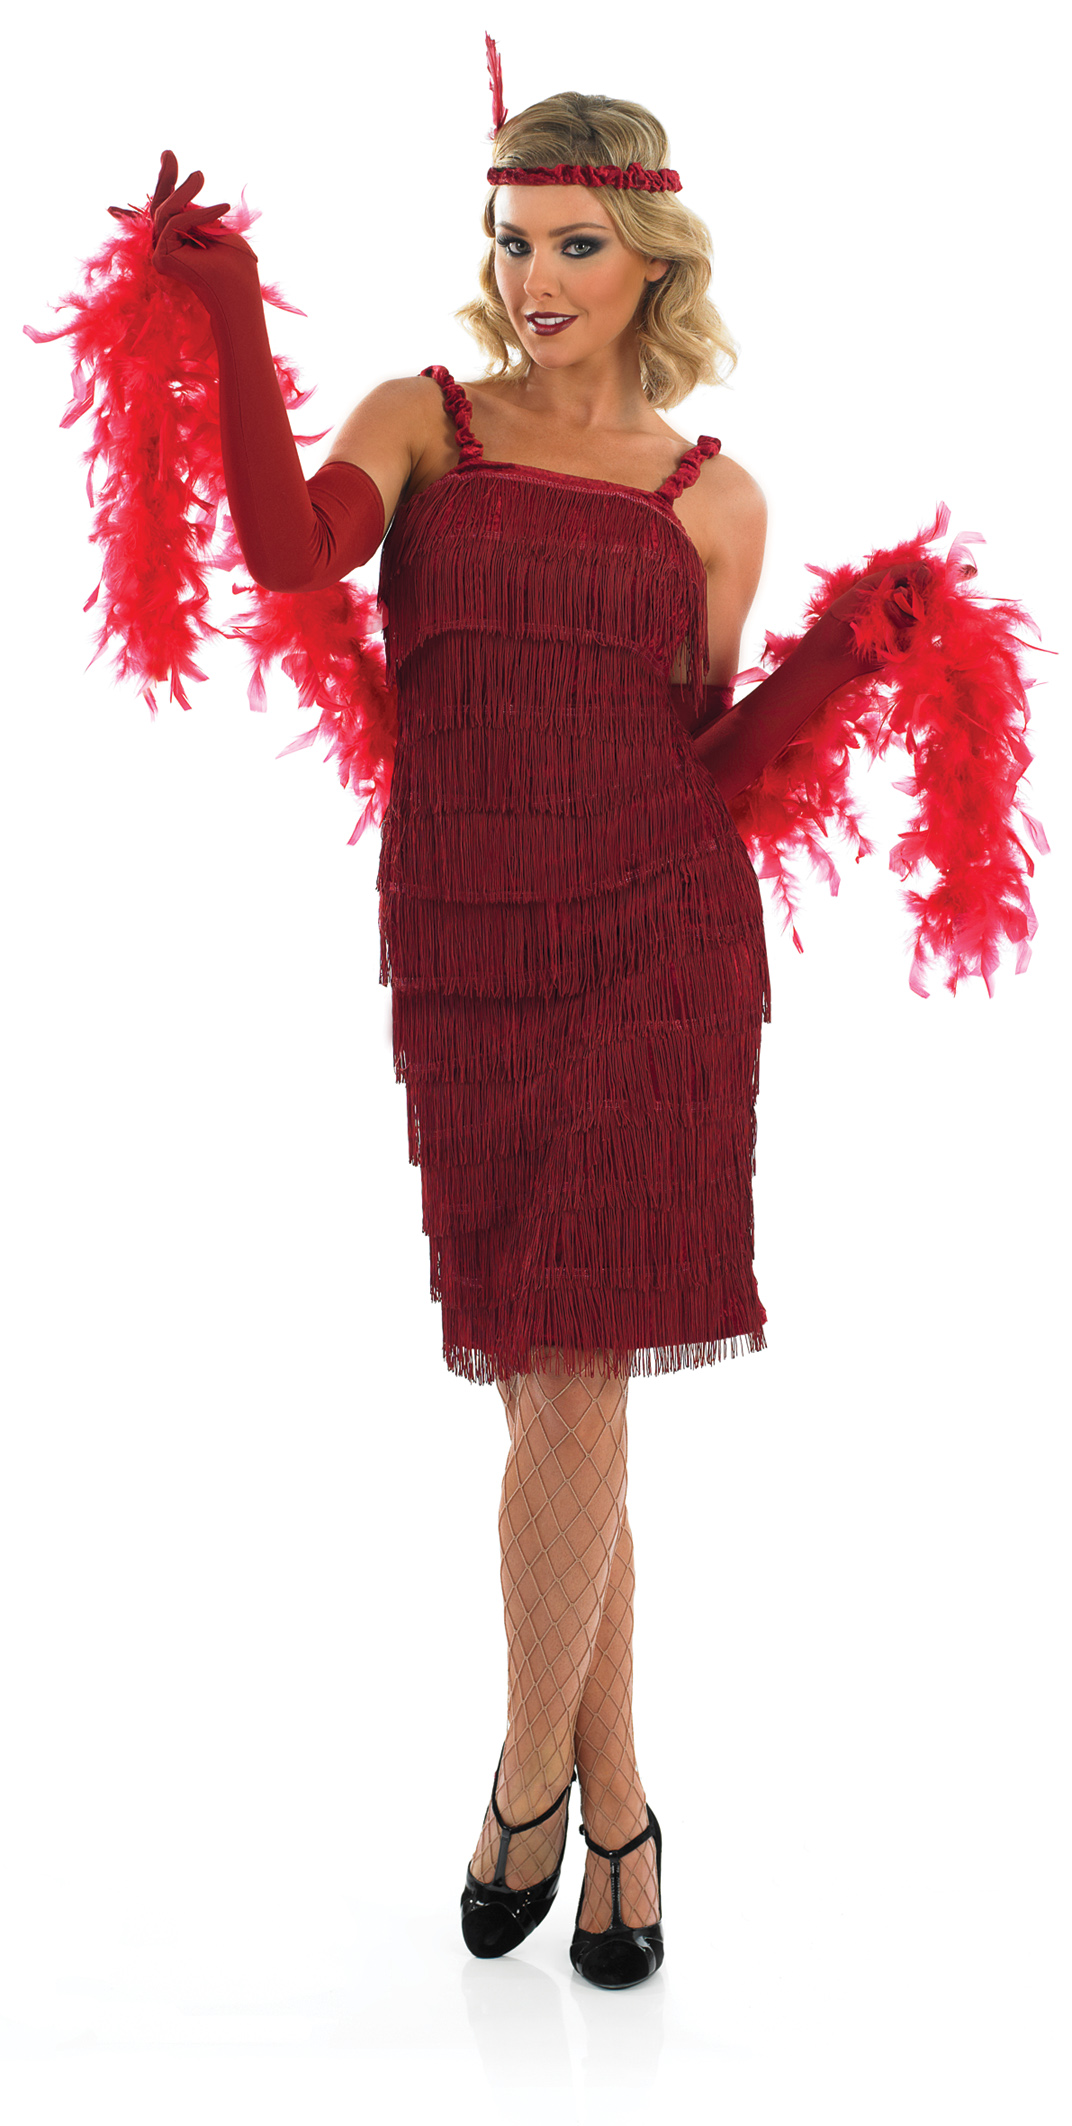 df068115024 Roaring 20s Girl Red Flapper Costume